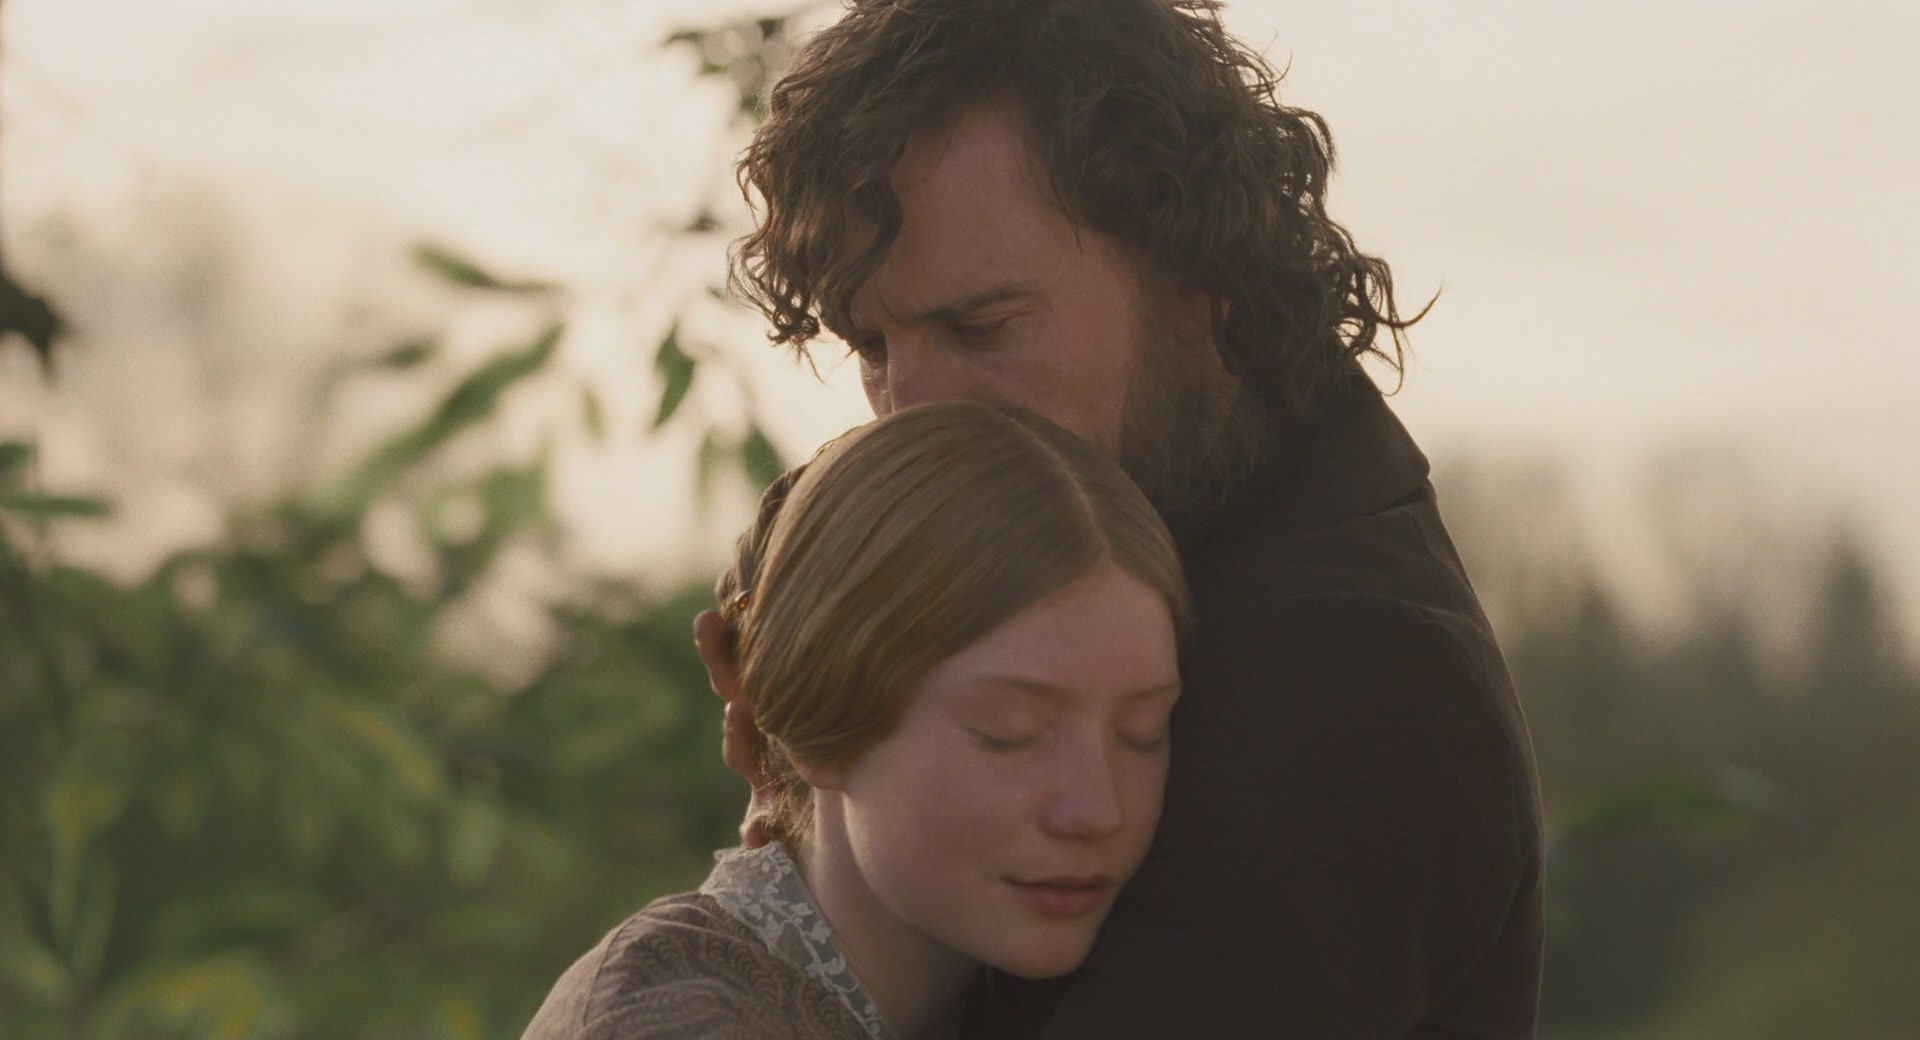 above all jane eyre is a Jane eyre is my favorite classic novel of all time it's hauntingly beautiful, eloquently written, daringly progressive, and a terrific love story to boot it's hauntingly beautiful, eloquently written, daringly progressive, and a terrific love story to boot.